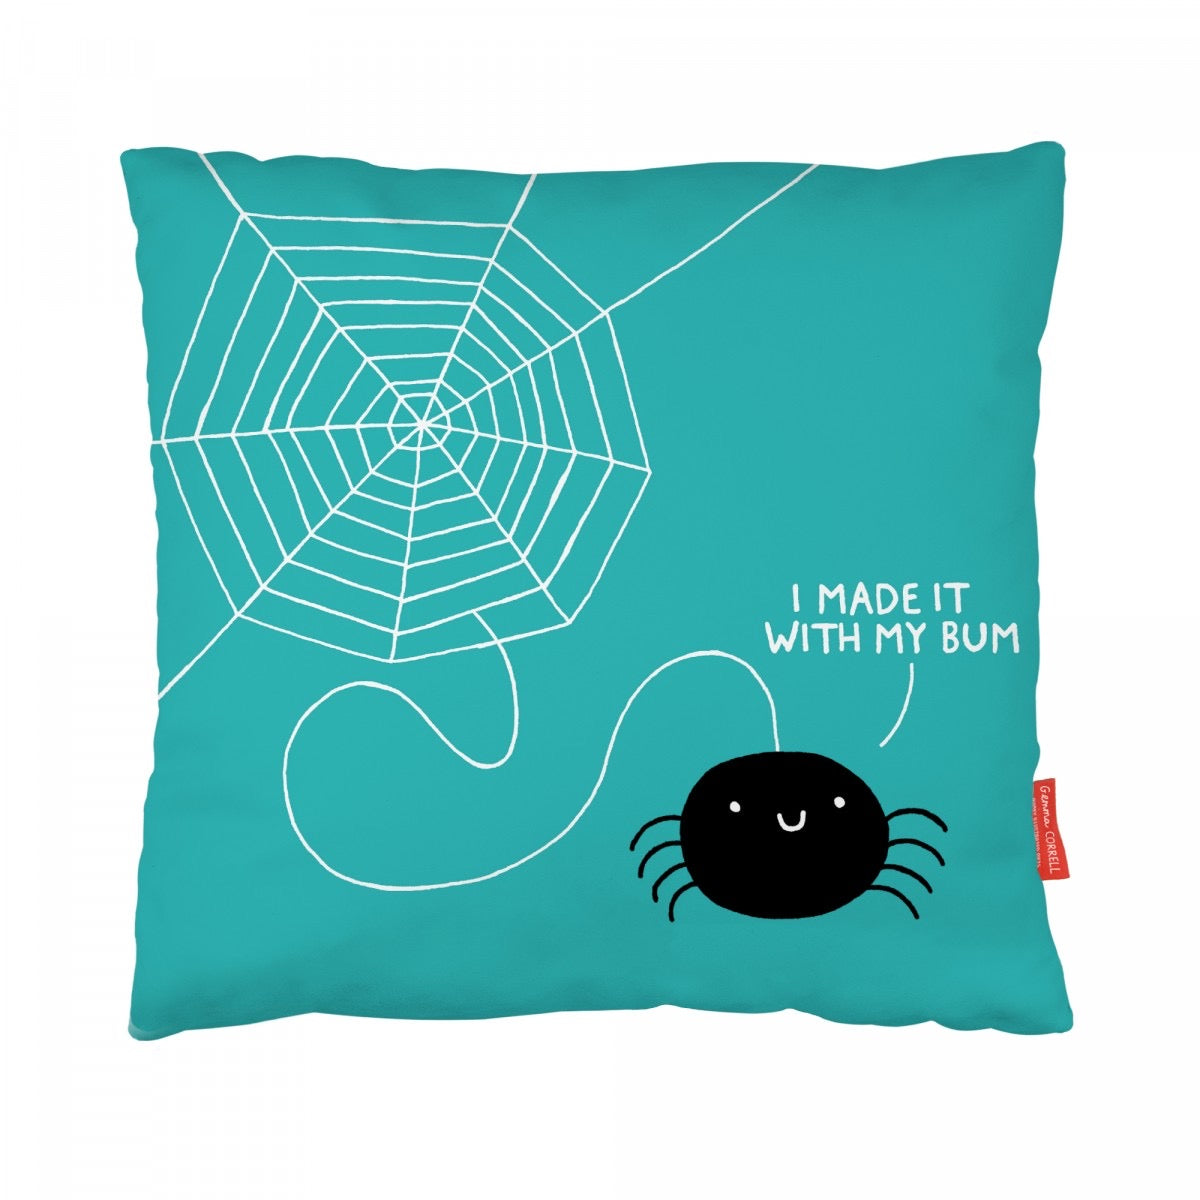 Made It With My Bum by Ohh Deer